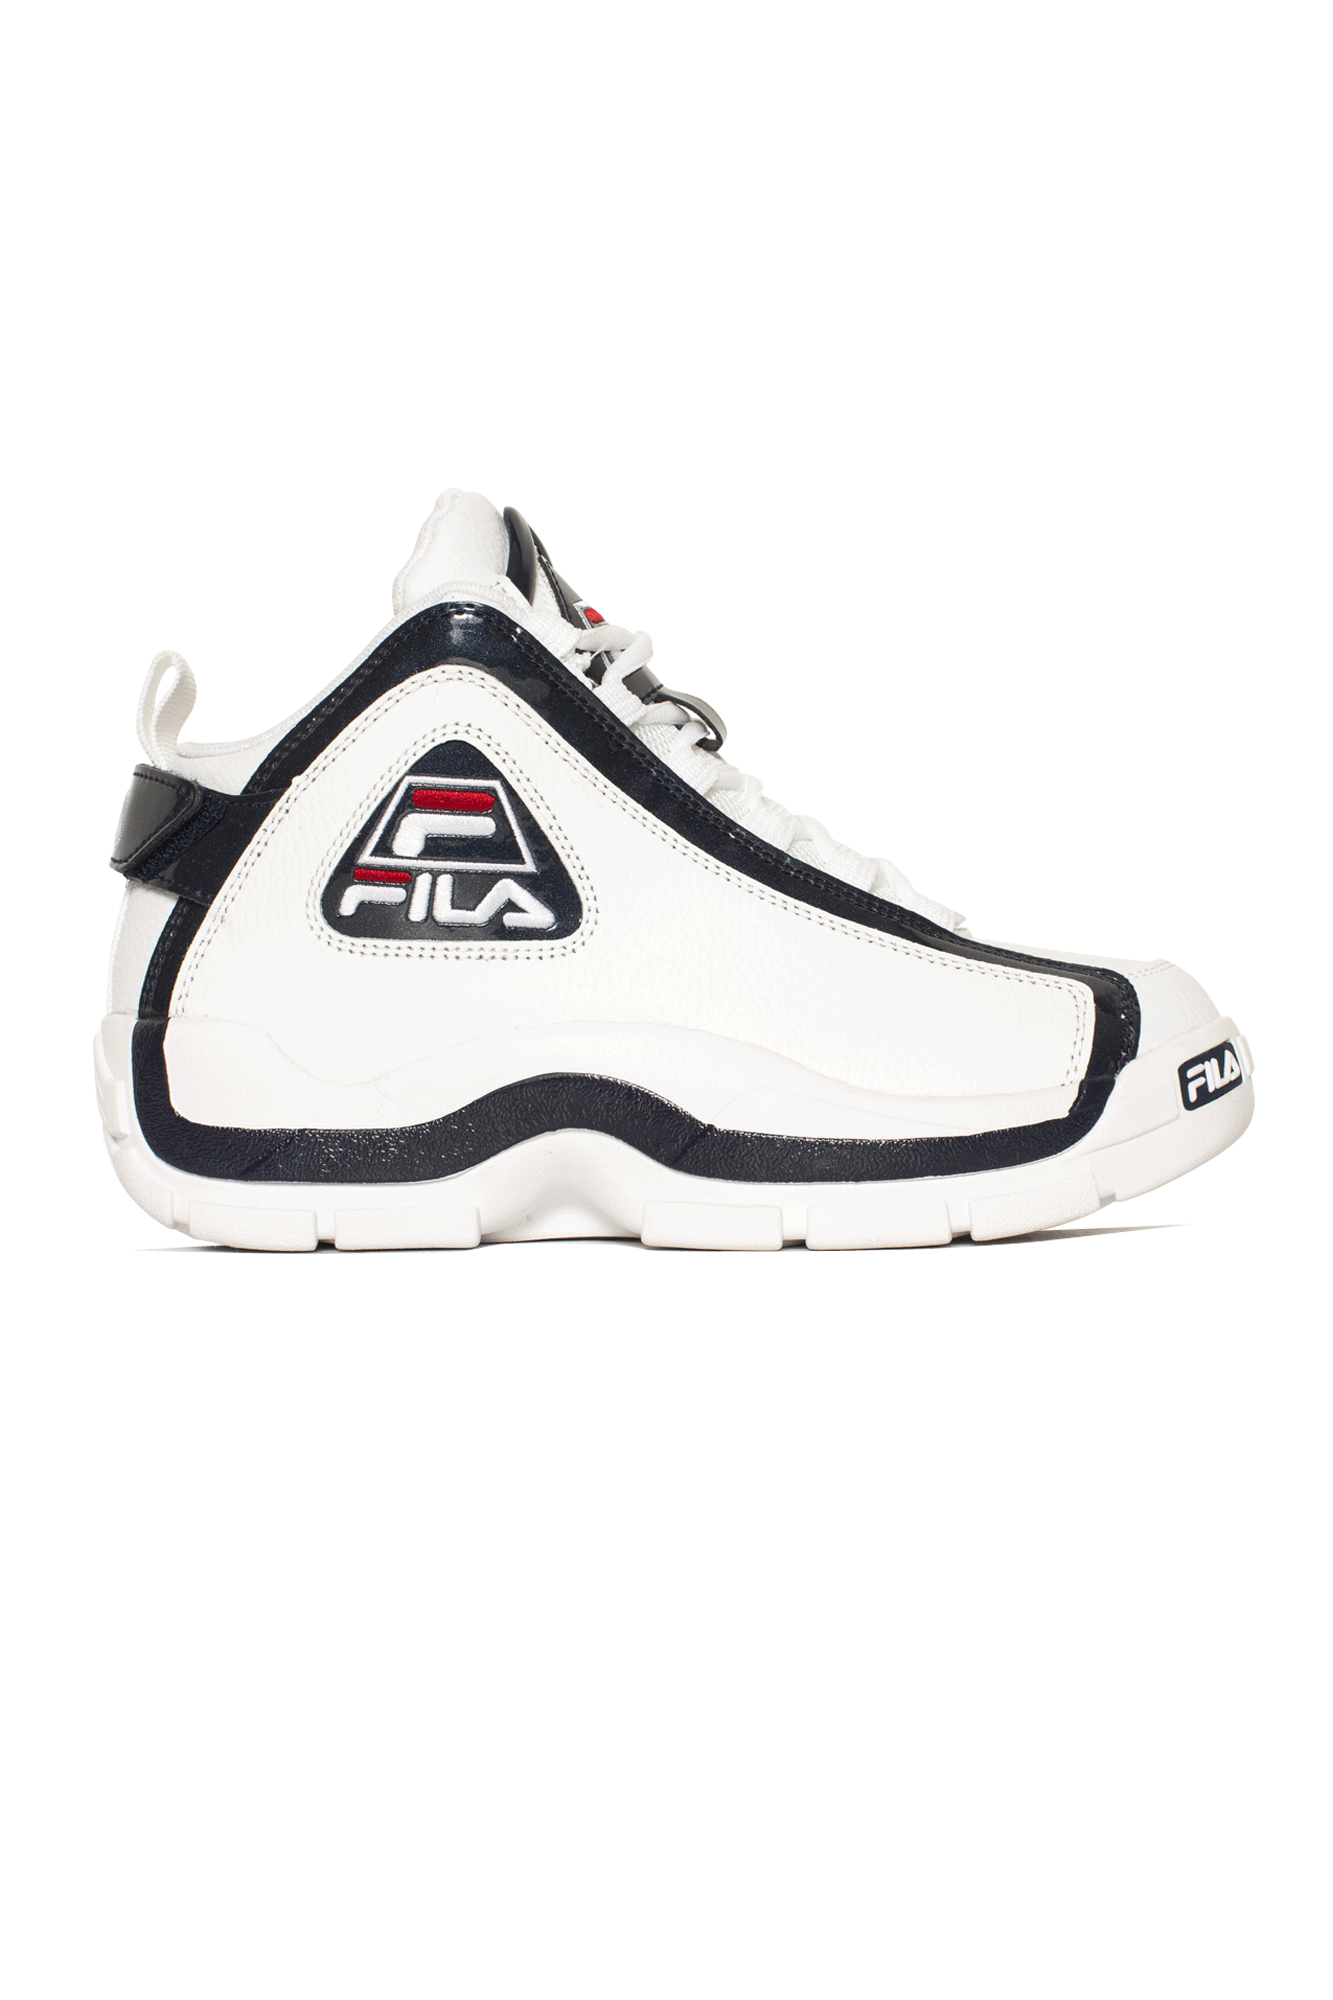 Fila Sneakers Grant Hill 2 Bianco 1010788#H1US#01M#7,5 - One Block Down